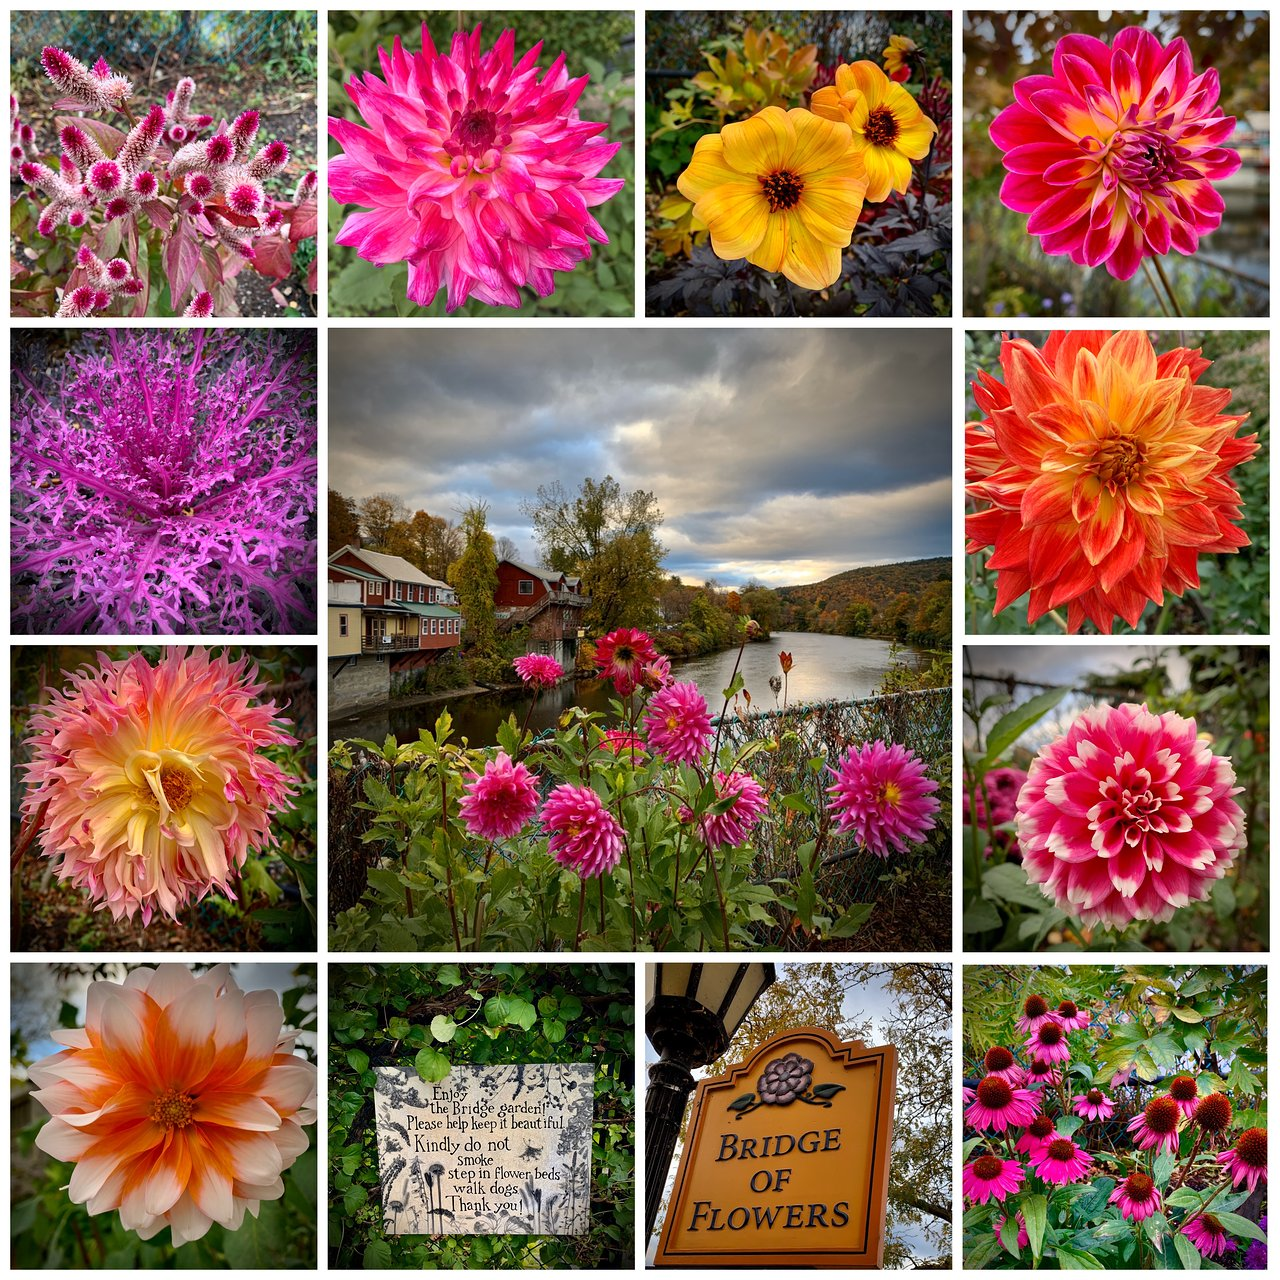 Bridge Of Flowers Shelburne Falls 2020 All You Need To Know